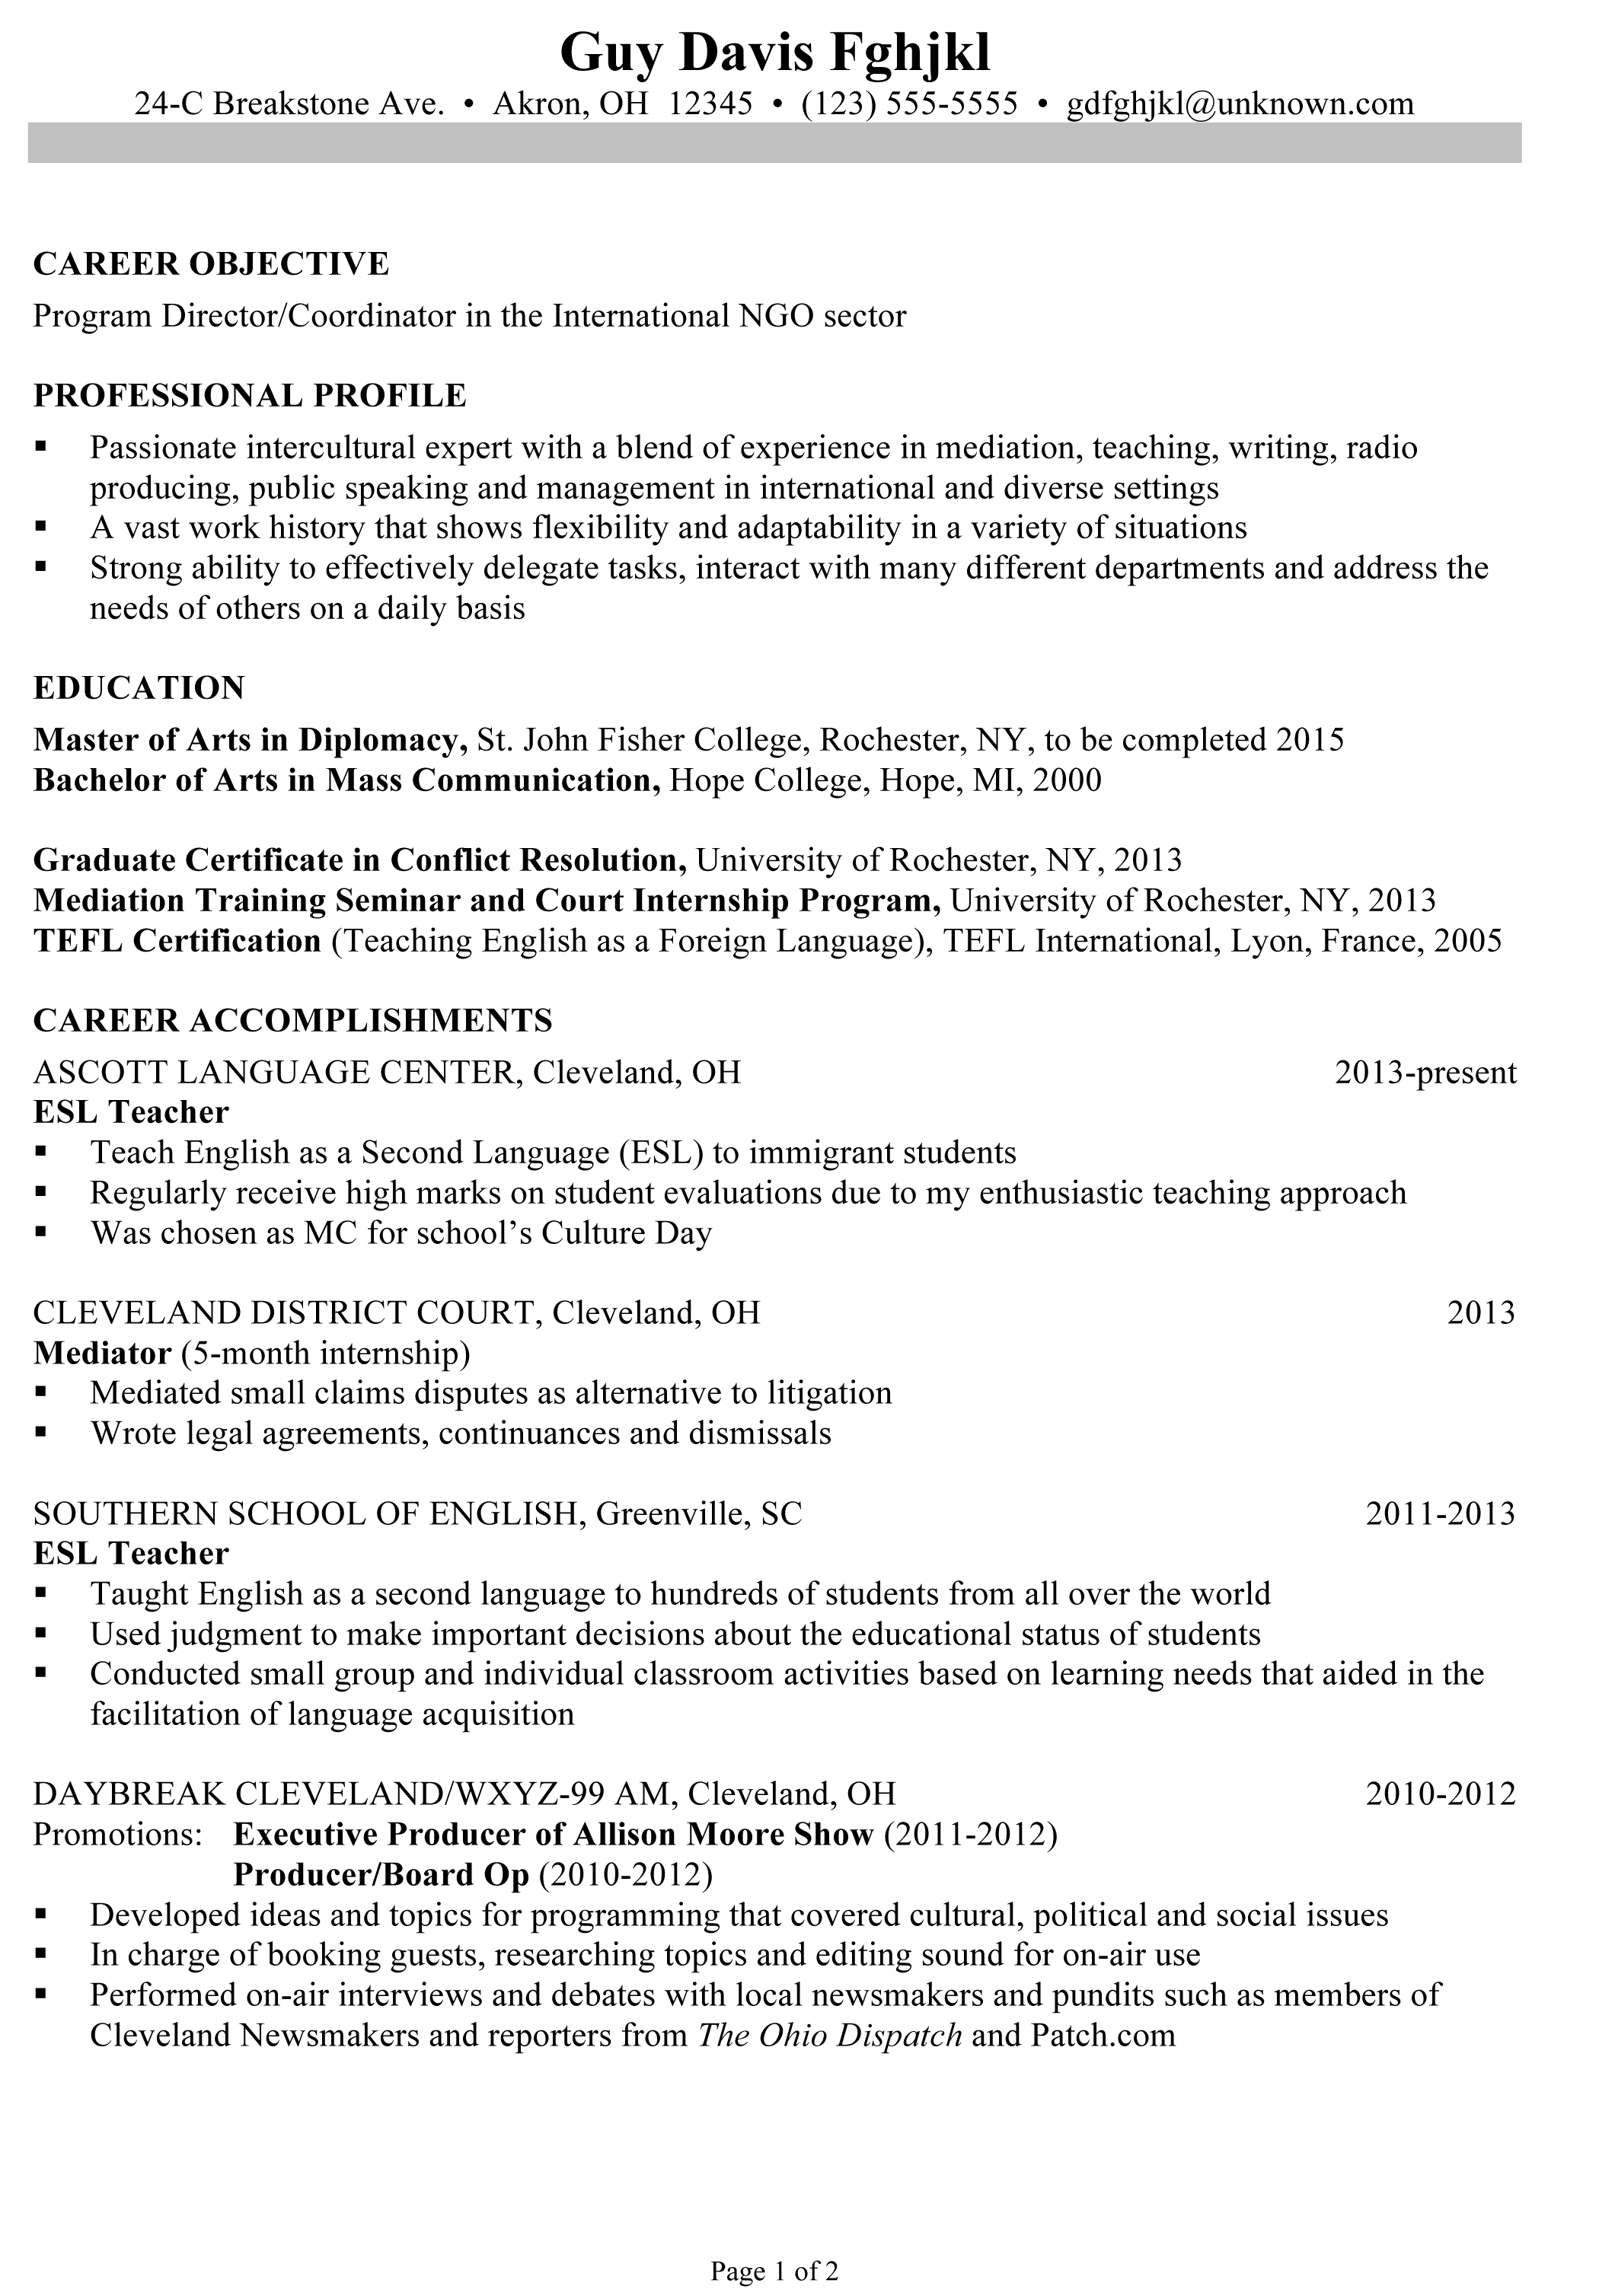 Resume For A Job Chronological Resume Sample Program Director Coordinator  My